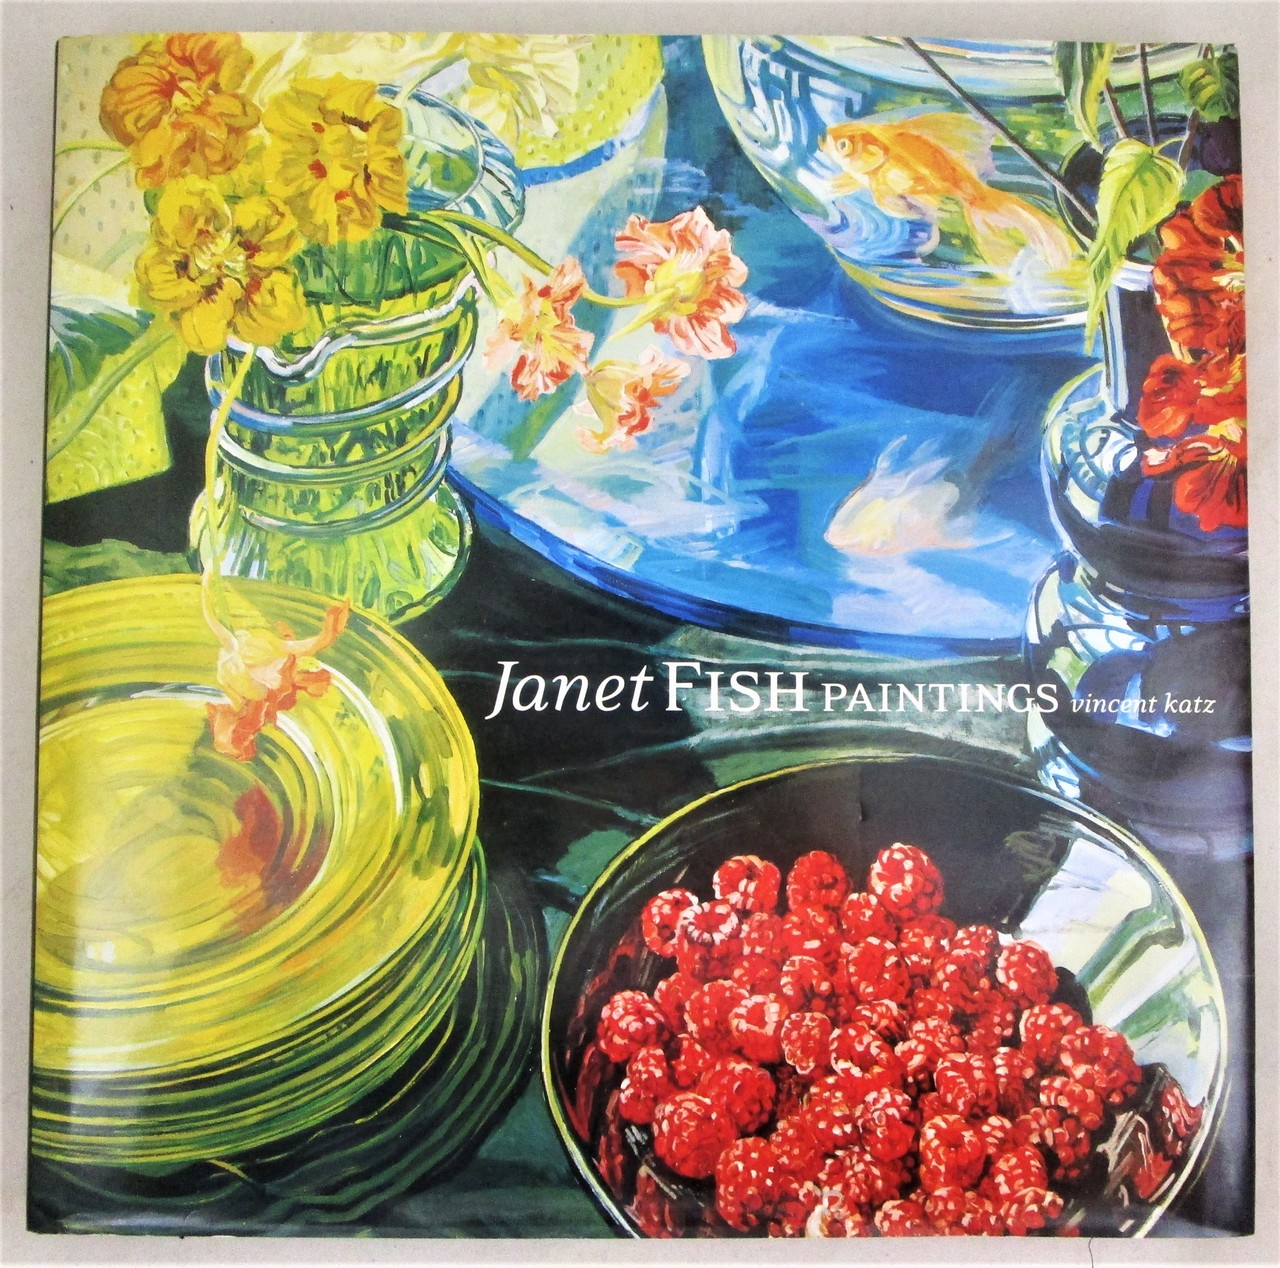 JANET FISH: PAINTINGS, by Vincent Katz - 2002 [Signed 1st Ed]